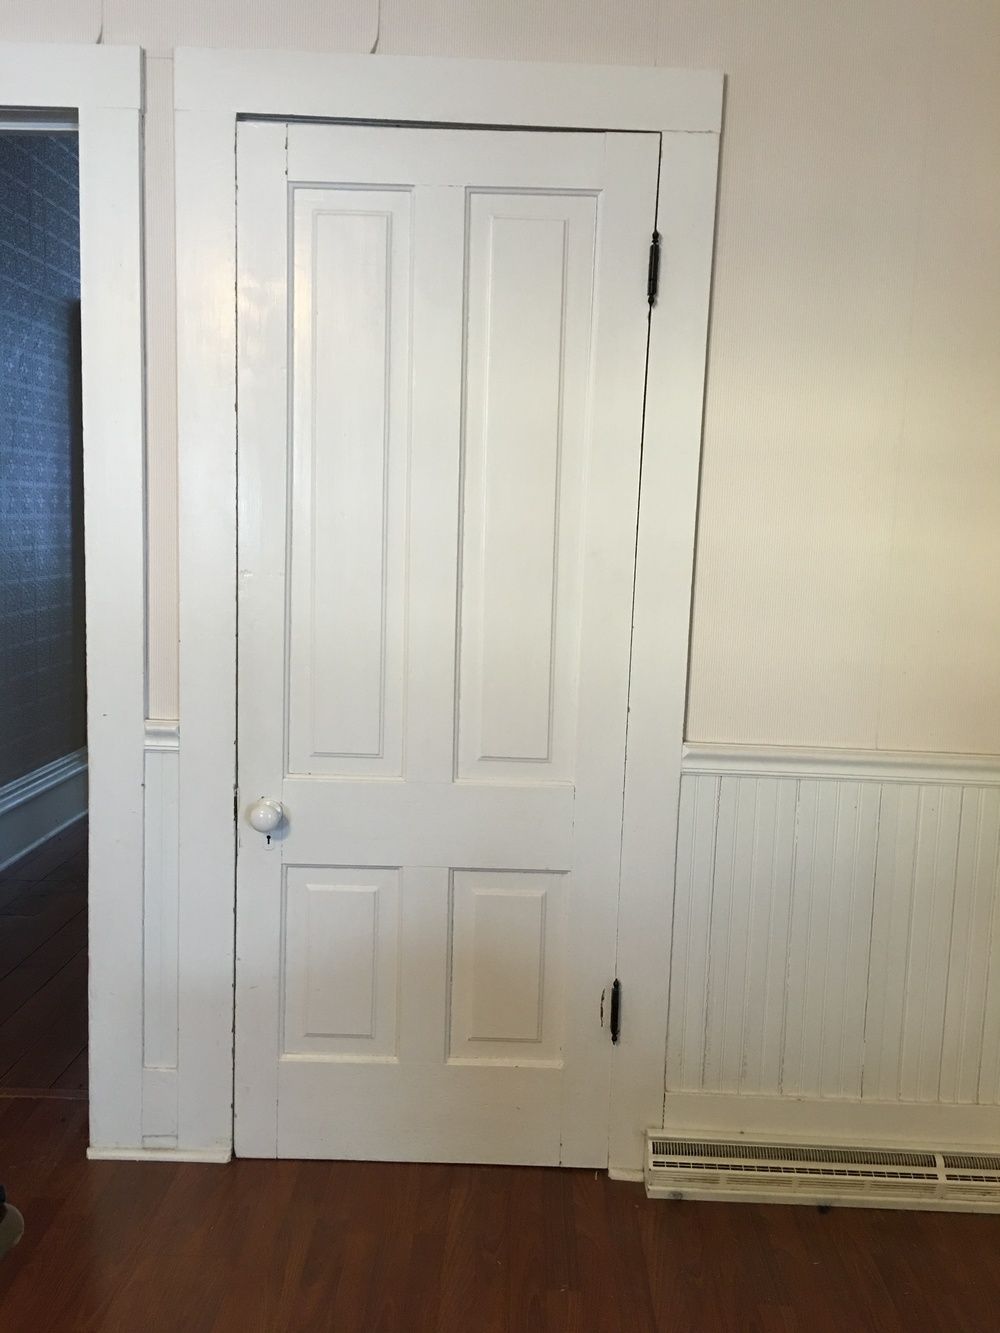 The flat, simple woodwork around this (poorly hung) kitchen door is consistent with what can be found throughout the back side of the house, both upstairs and down...